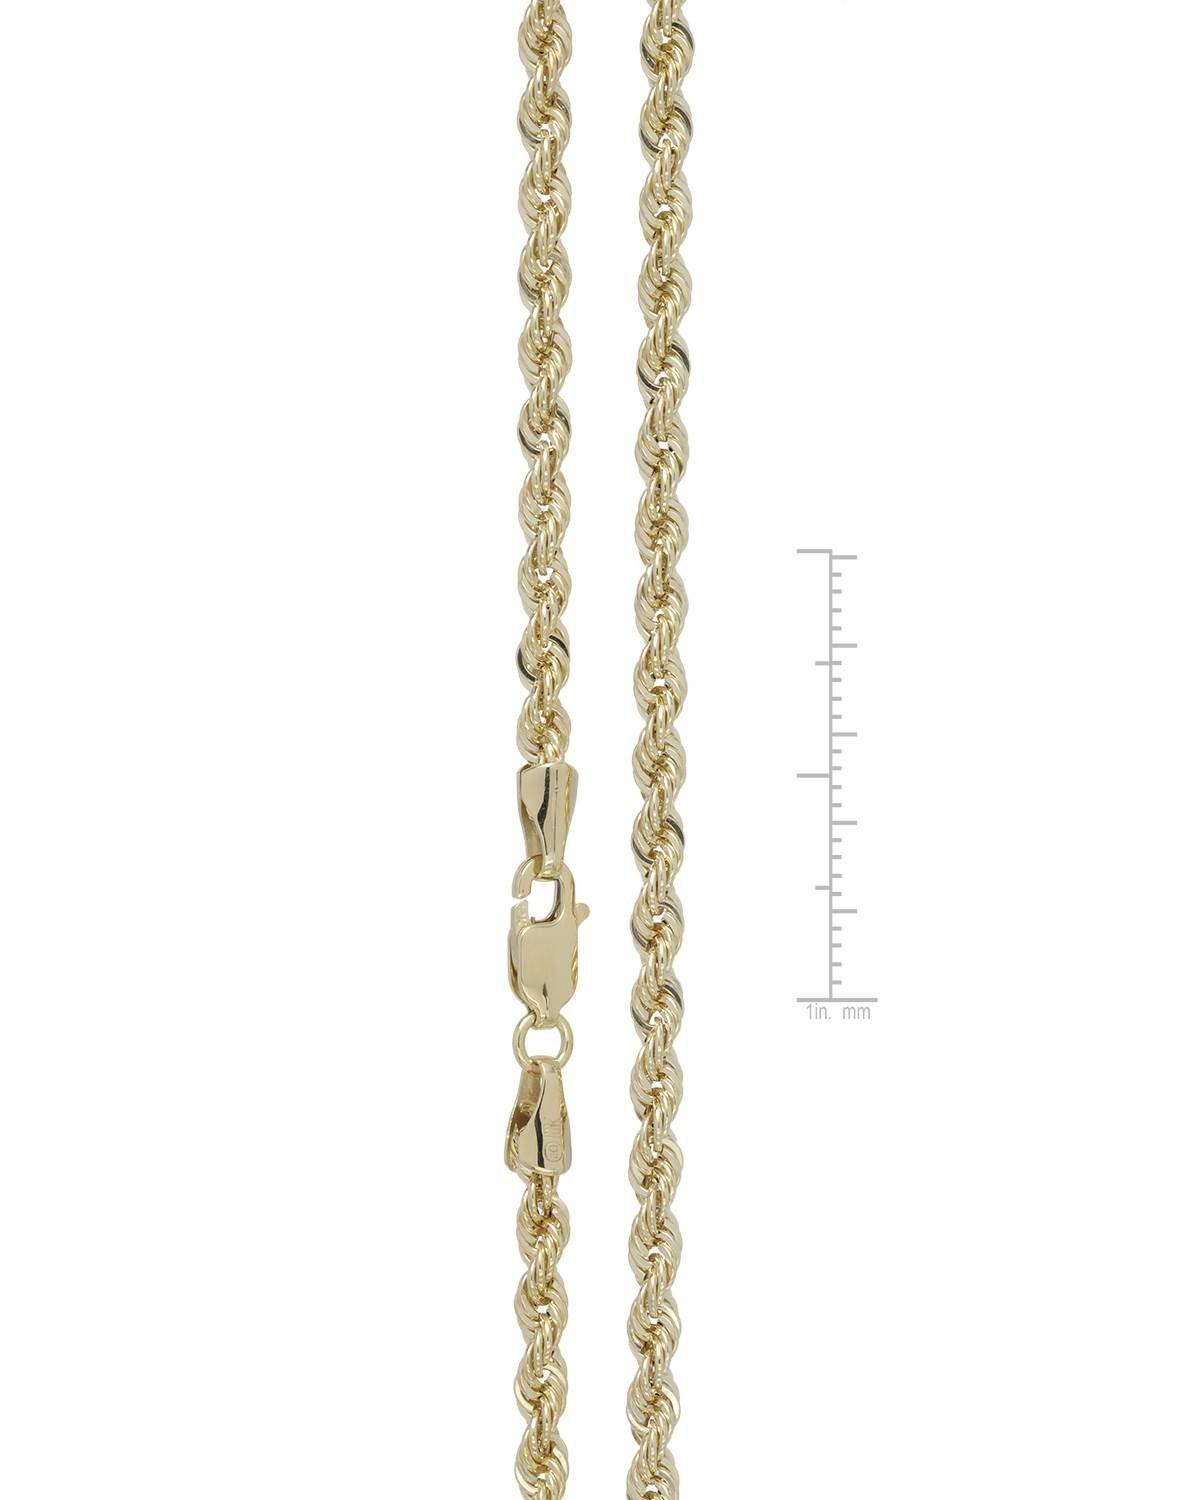 Mcs Jewelry 10 Karat Yellow Gold Solid Rope Chain Necklace 2 25mm Length 16 30 20 Affiliate Mcs Yellow Necklace Jewelry Necklace